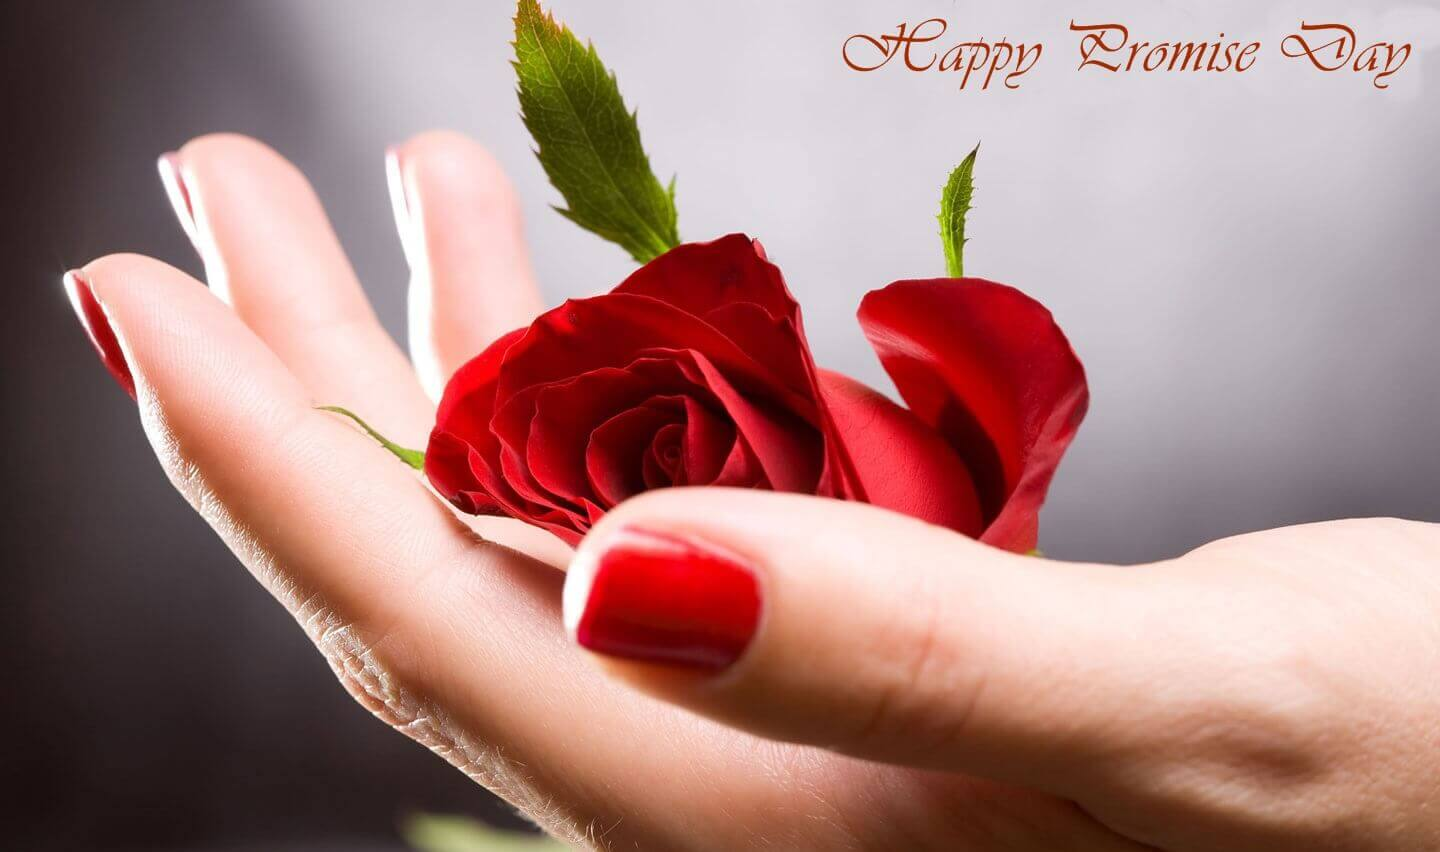 Lovely Happy Promise Day Wishing red rose images